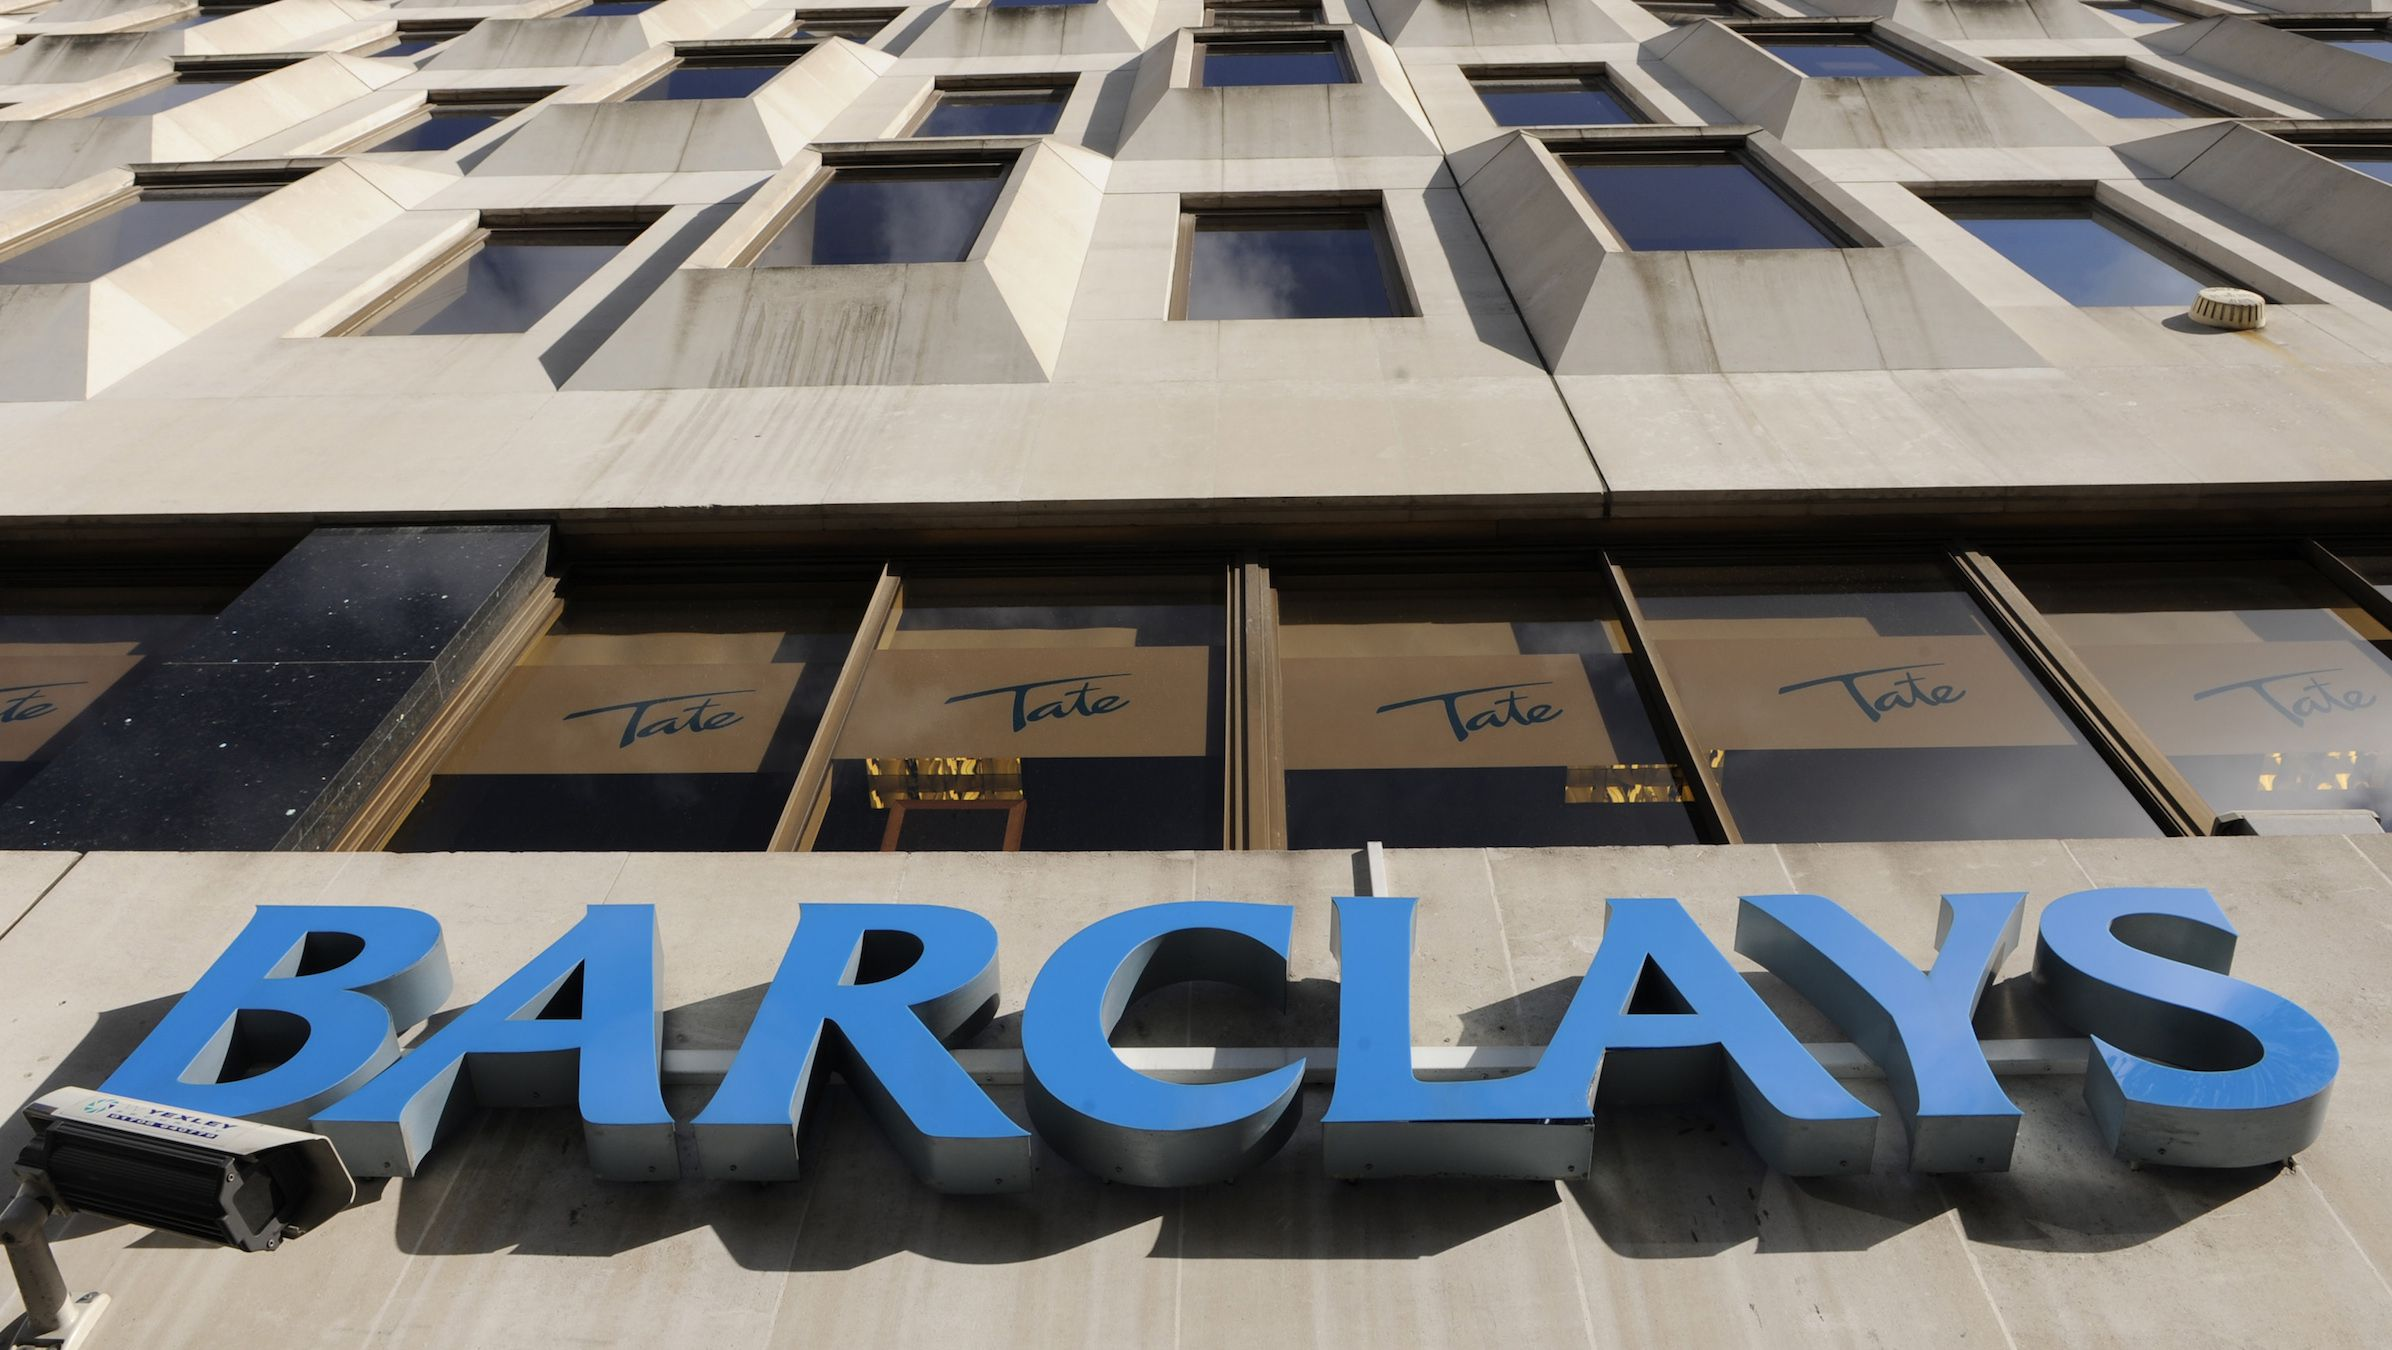 """A  Barclays Bank logo is seen on the outside of a branch, in central London in this October 31, 2008 file photograph. Britain's Barclays said on January 16, 2009 it knew of no justification for the big fall in its share price and it expects next month to report pretax profit for the year """"well ahead"""" of analysts' estimates.  REUTERS/Toby Melville/Files   (BRITAIN) - RTR23H6L"""